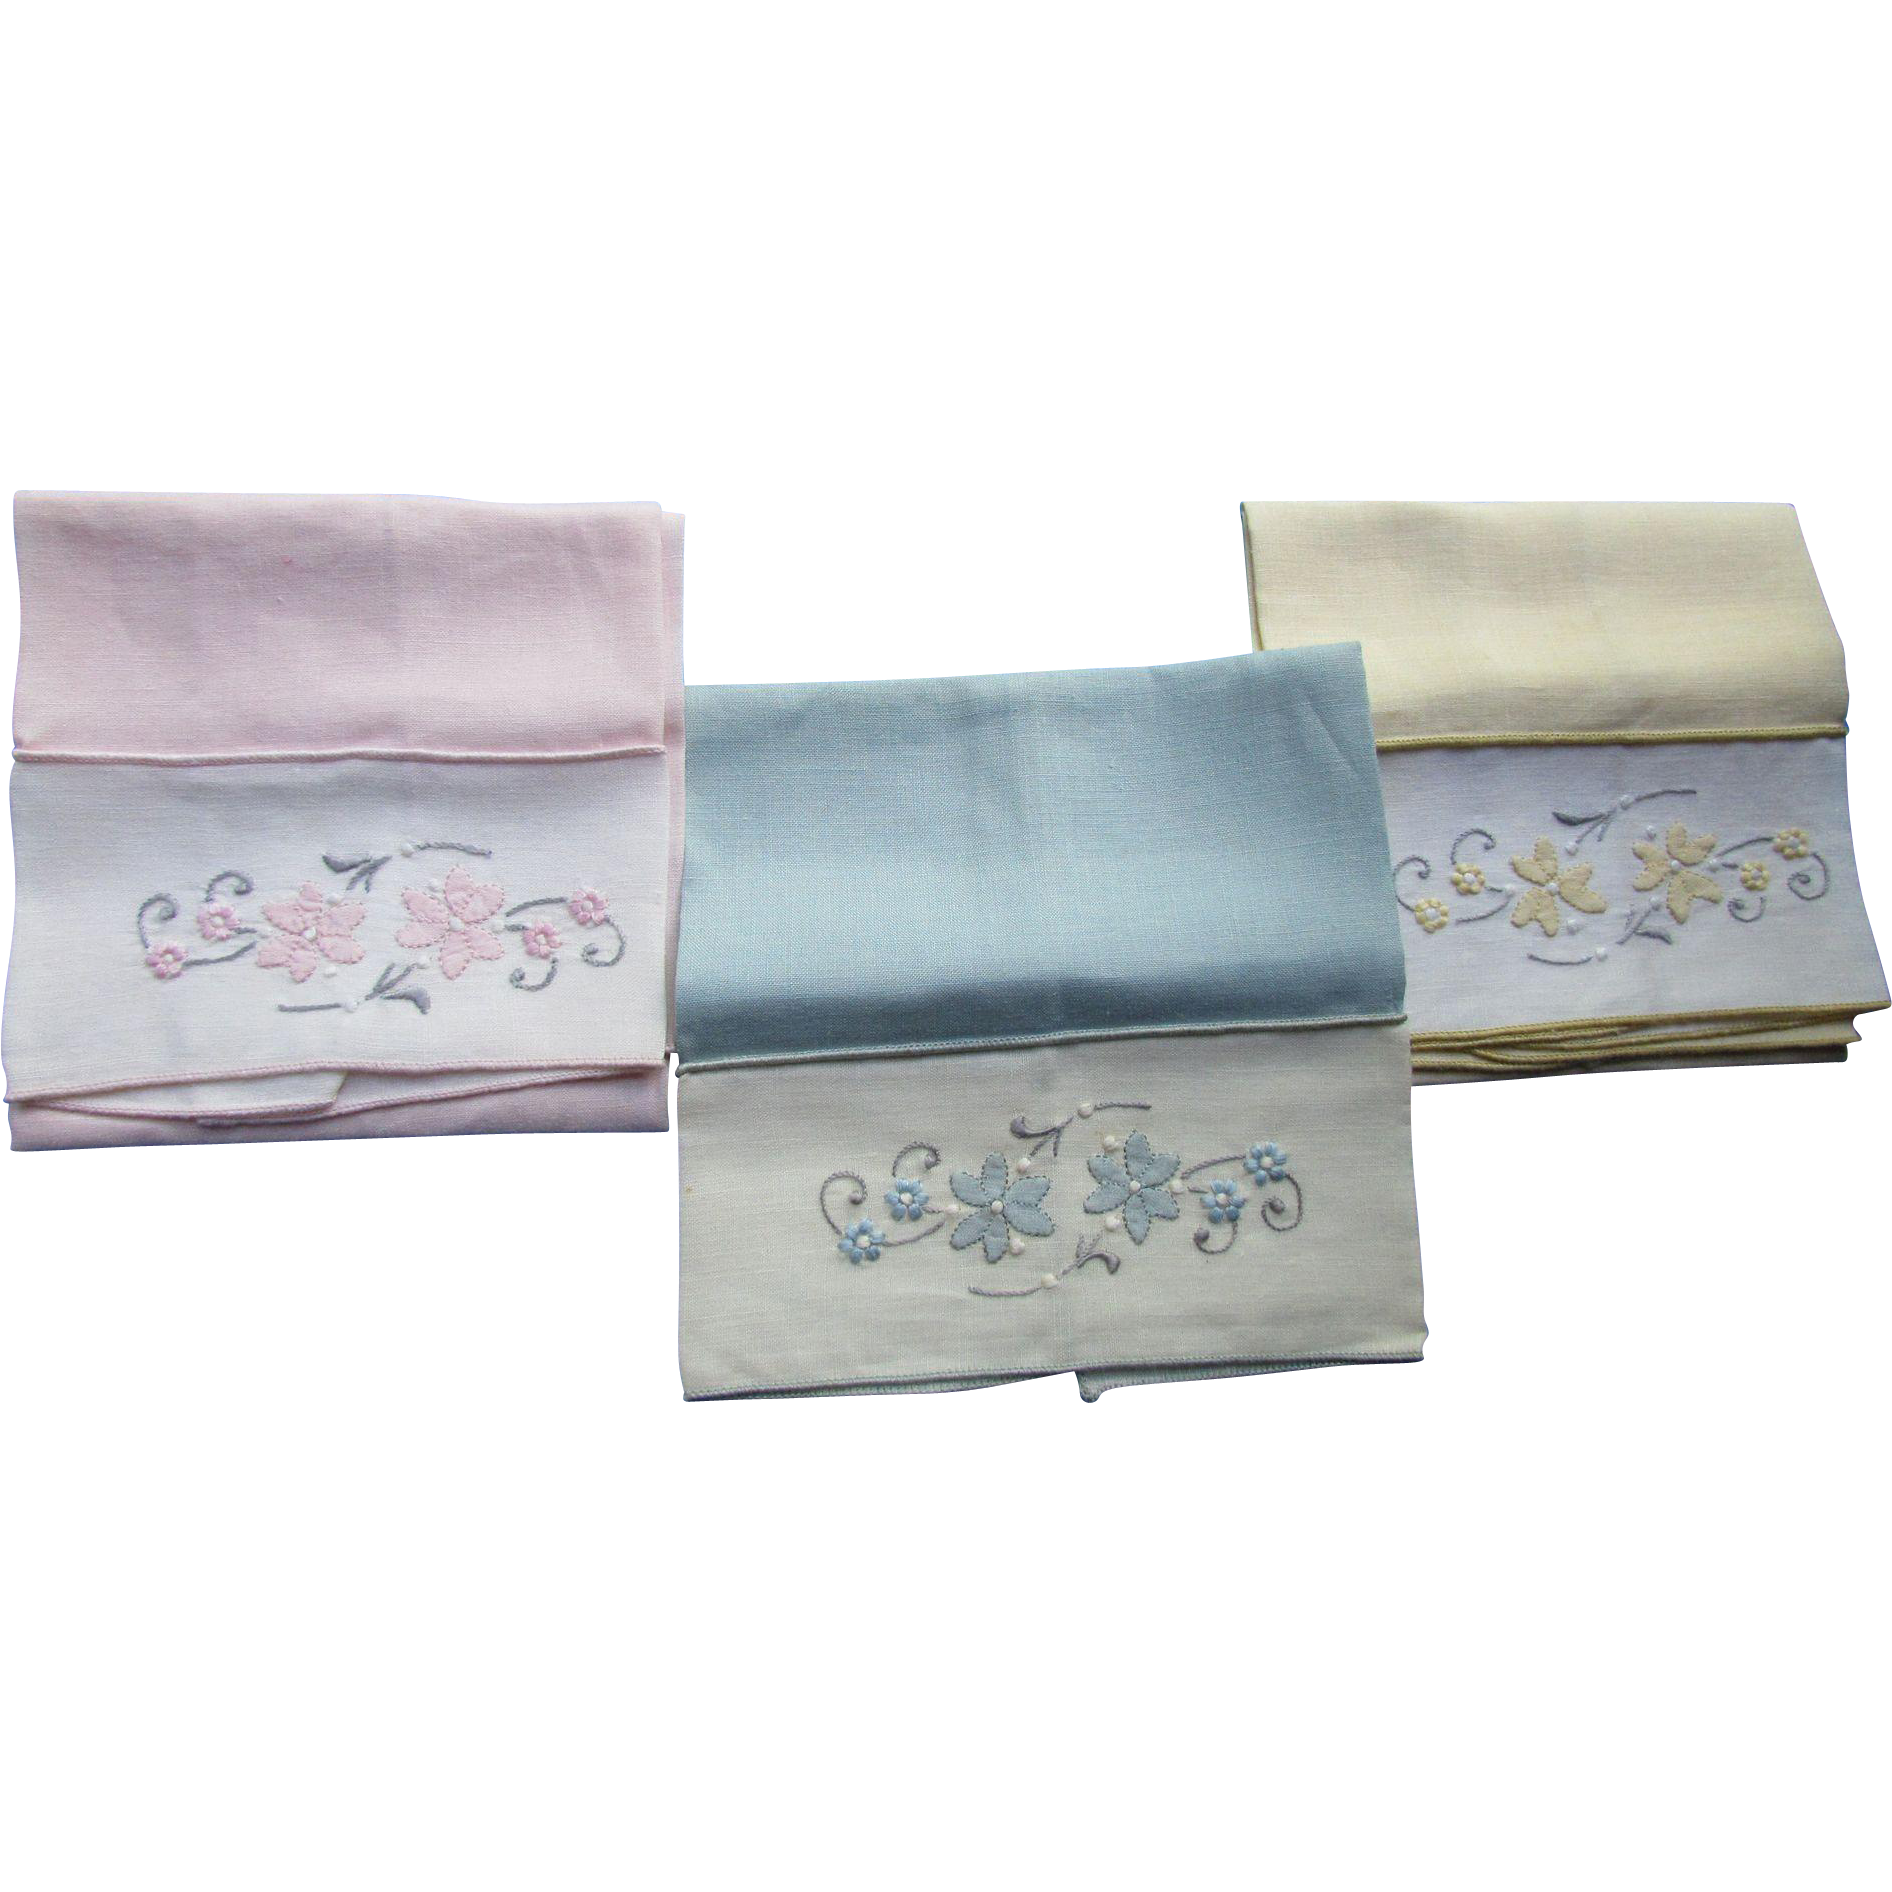 Trio Applique Finger Tip Towels in Pink Yellow and Blue Flower Bands